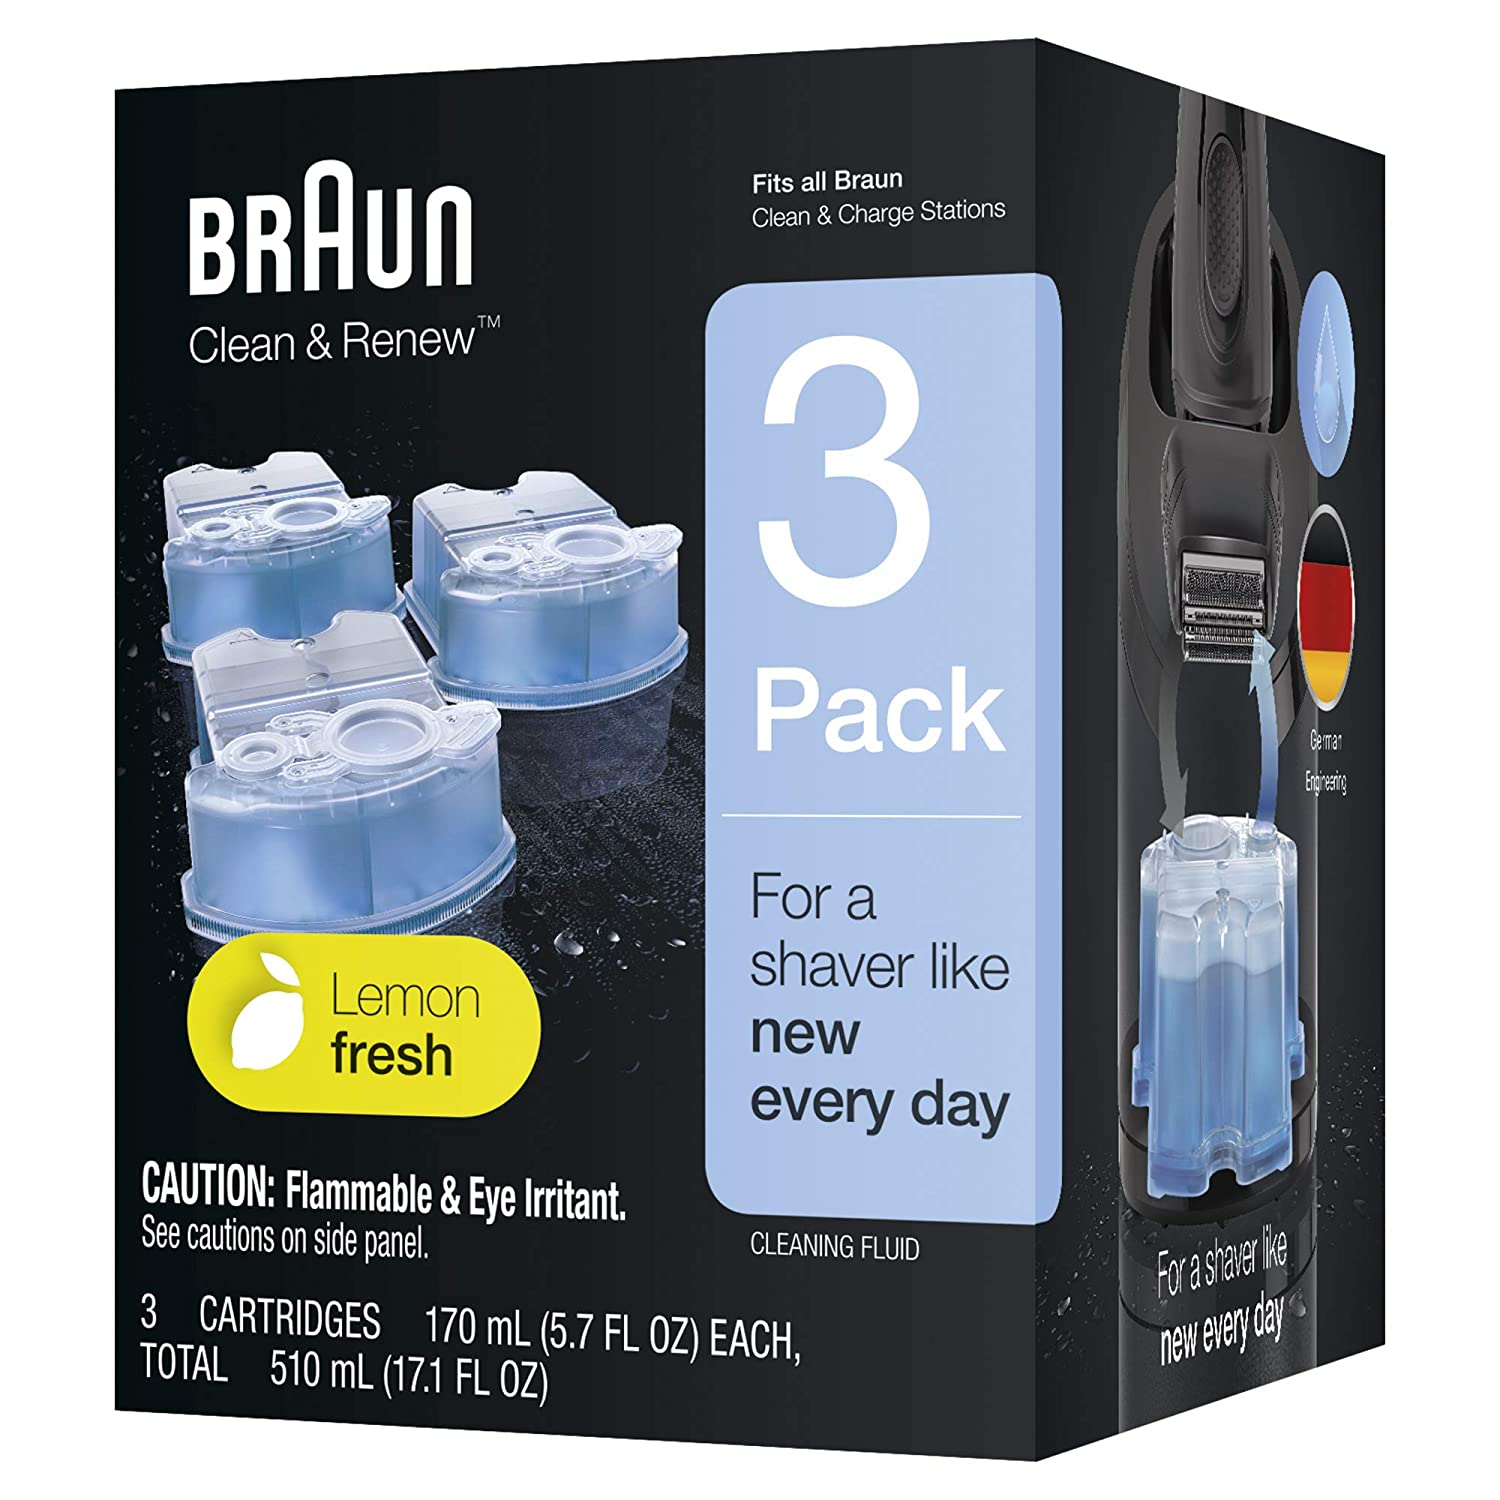 braun clean and charge instructions